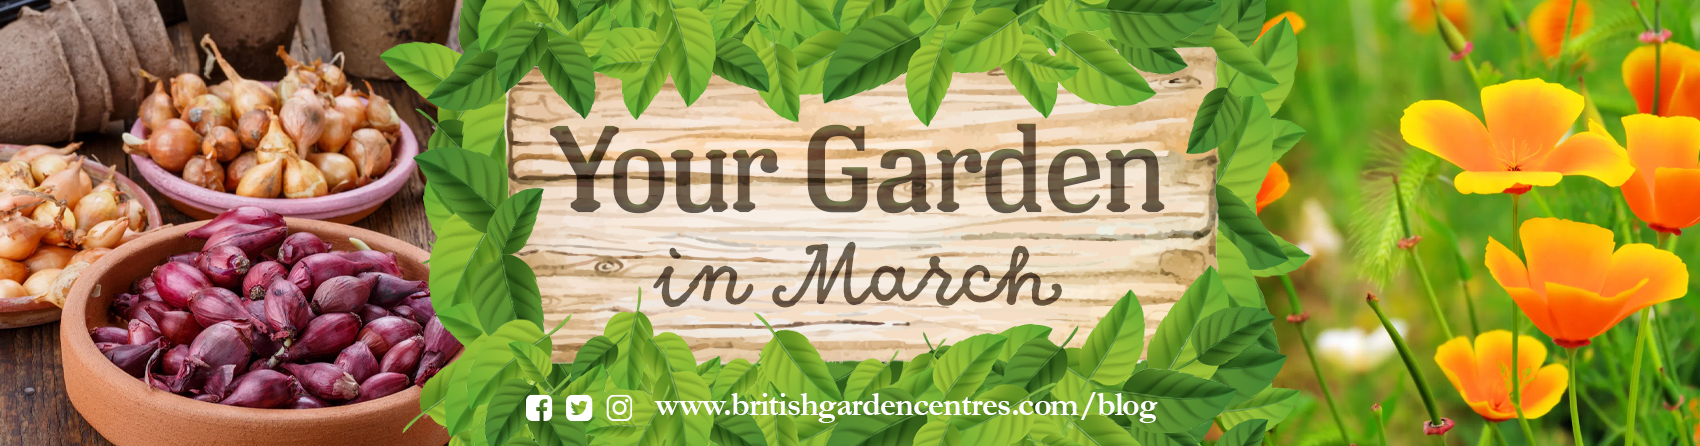 Your garden in - March